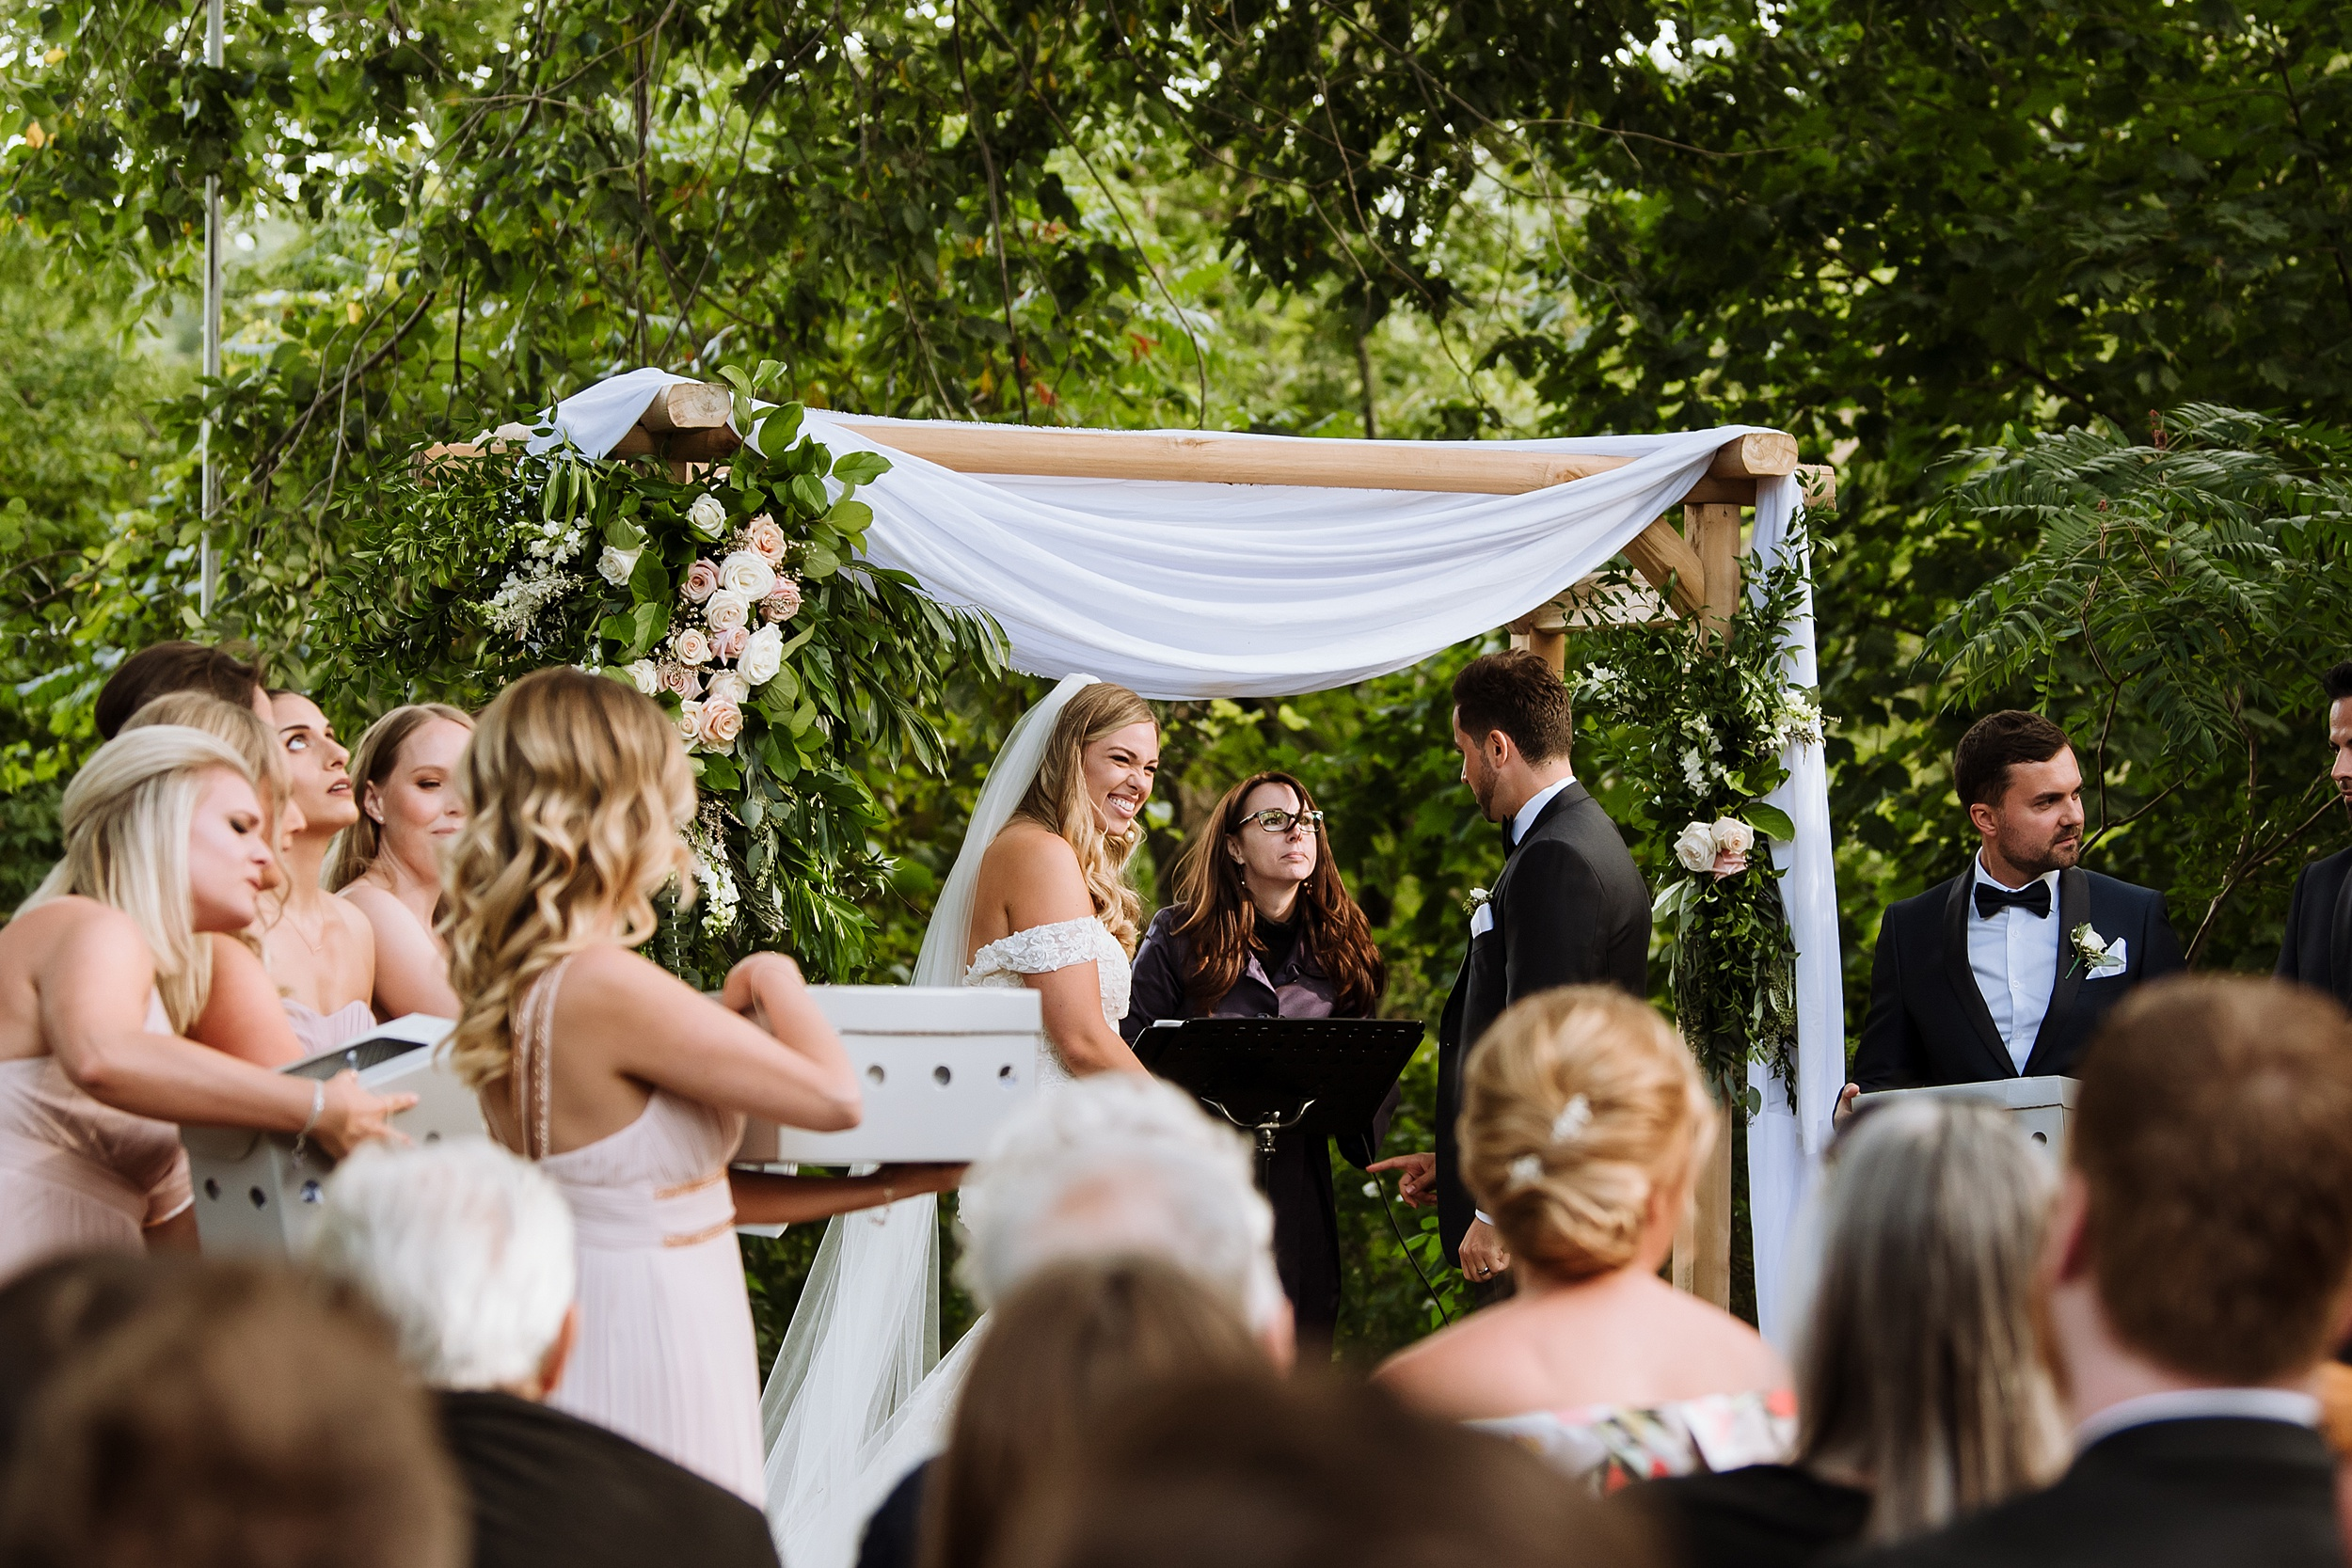 Rustic_Backyard_Wedding_Toronto_Photographer115.jpg